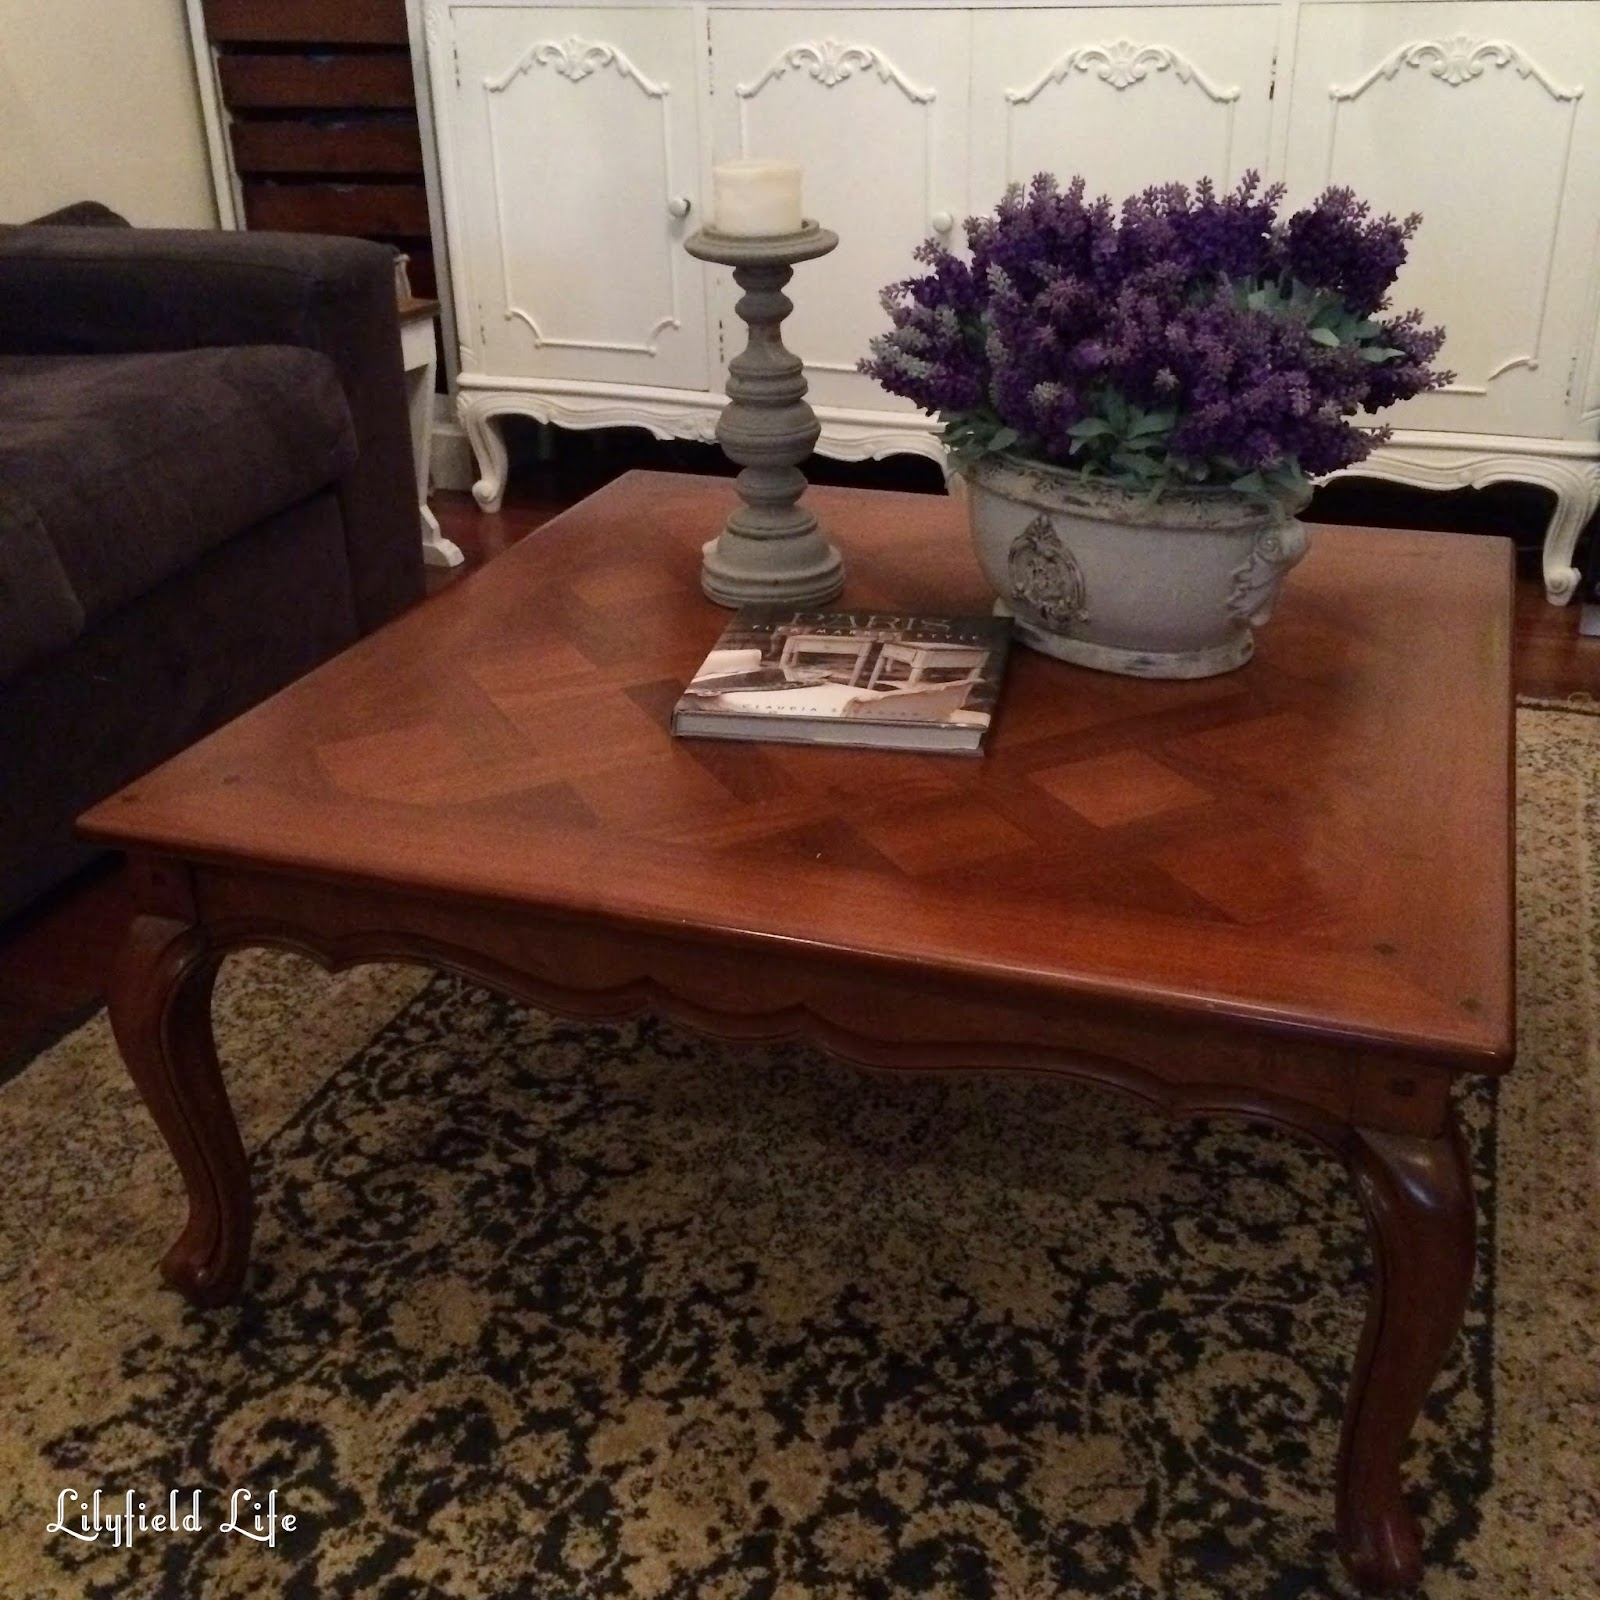 Lilyfield Life a Linen Press a hall table and a coffee table